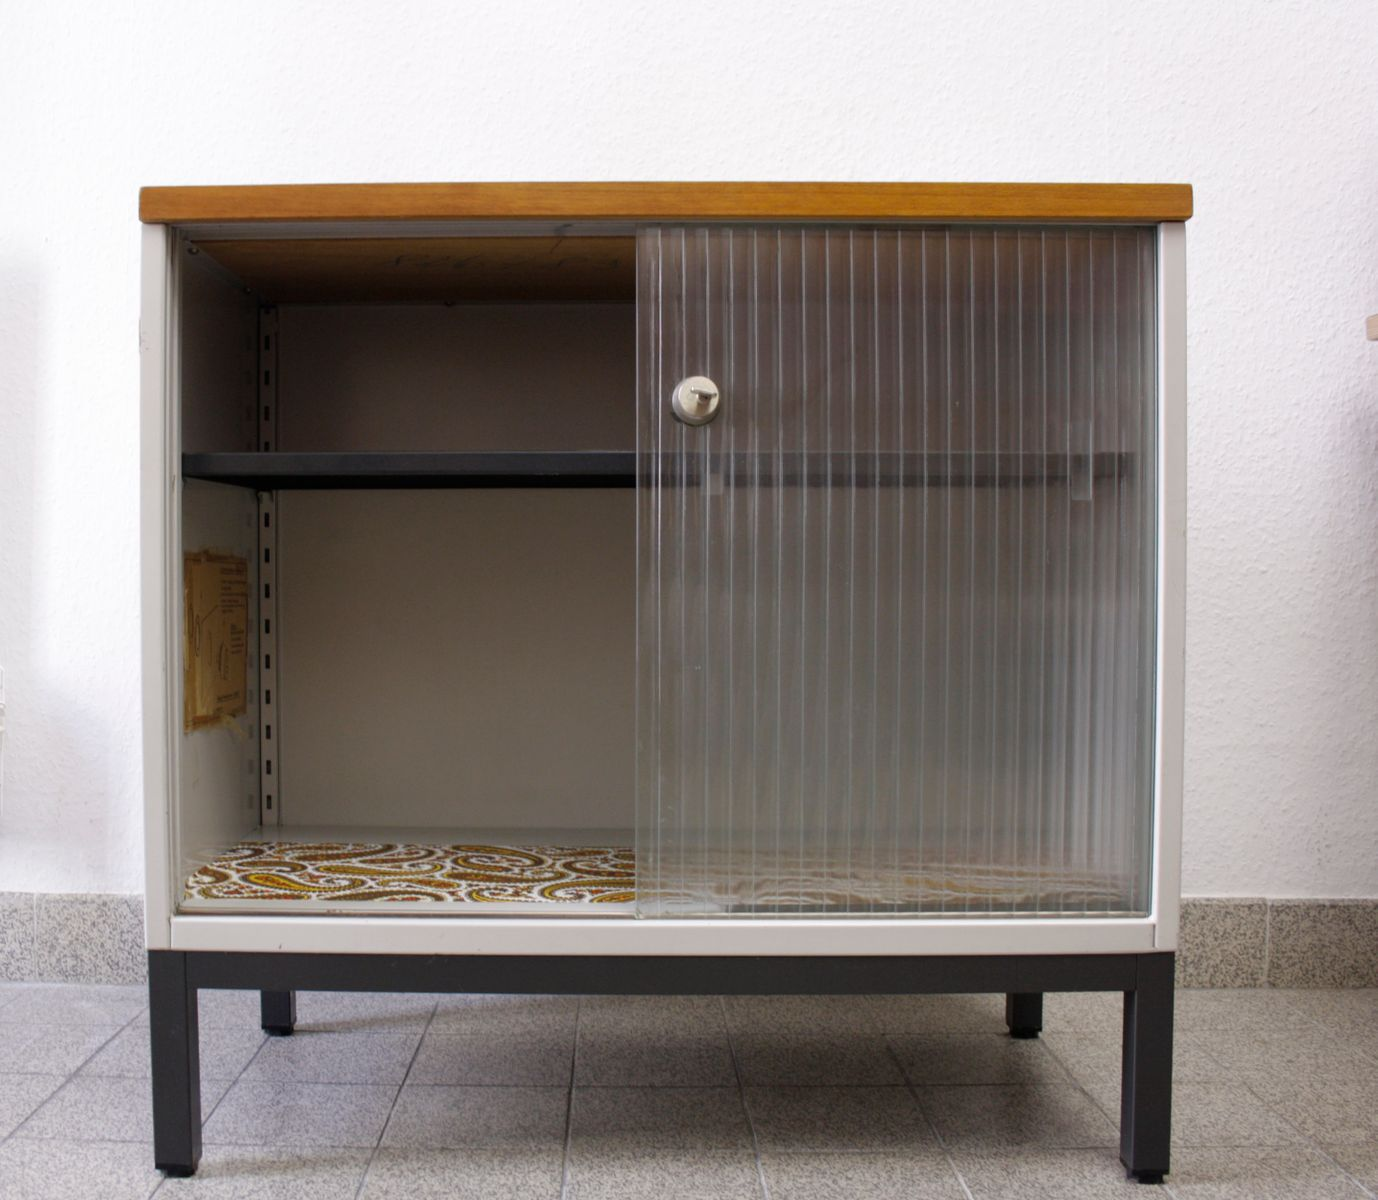 Vintage Metal Cabinet With Sliding Glass Doors From Mauser Werke